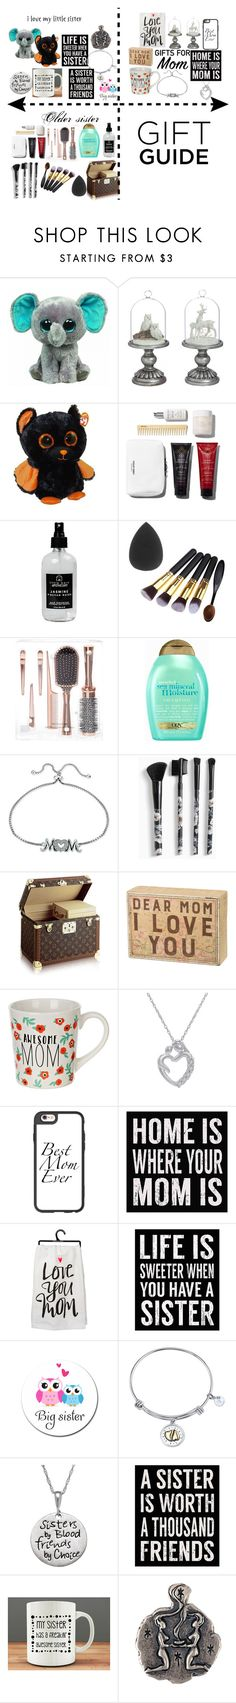 """Gift guide"" by gone-girl69 on Polyvore featuring beauty, Little Barn Apothecary, Organix, Giani Bernini, Torrid, Primitives By Kathy, Amanda Rose Collection, Casetify, Sixtrees and Belk Silverworks"